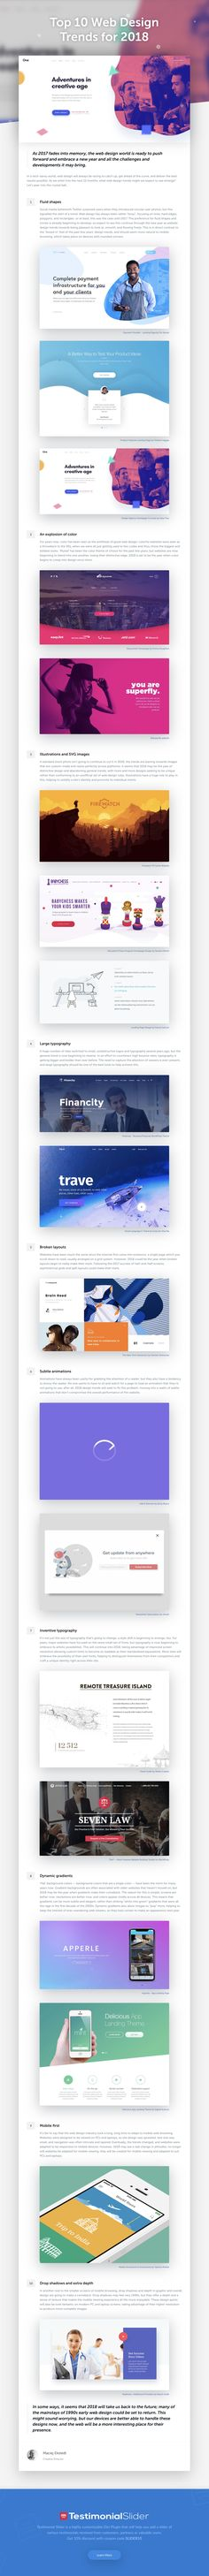 Top 10 Web Design Trends for 2018 - Website design - Design Web, Page Design, Blog Design, Design Ideas, Webdesign Inspiration, Website Design Inspiration, Design Trends 2018, Graphic Design Trends, Corporate Design